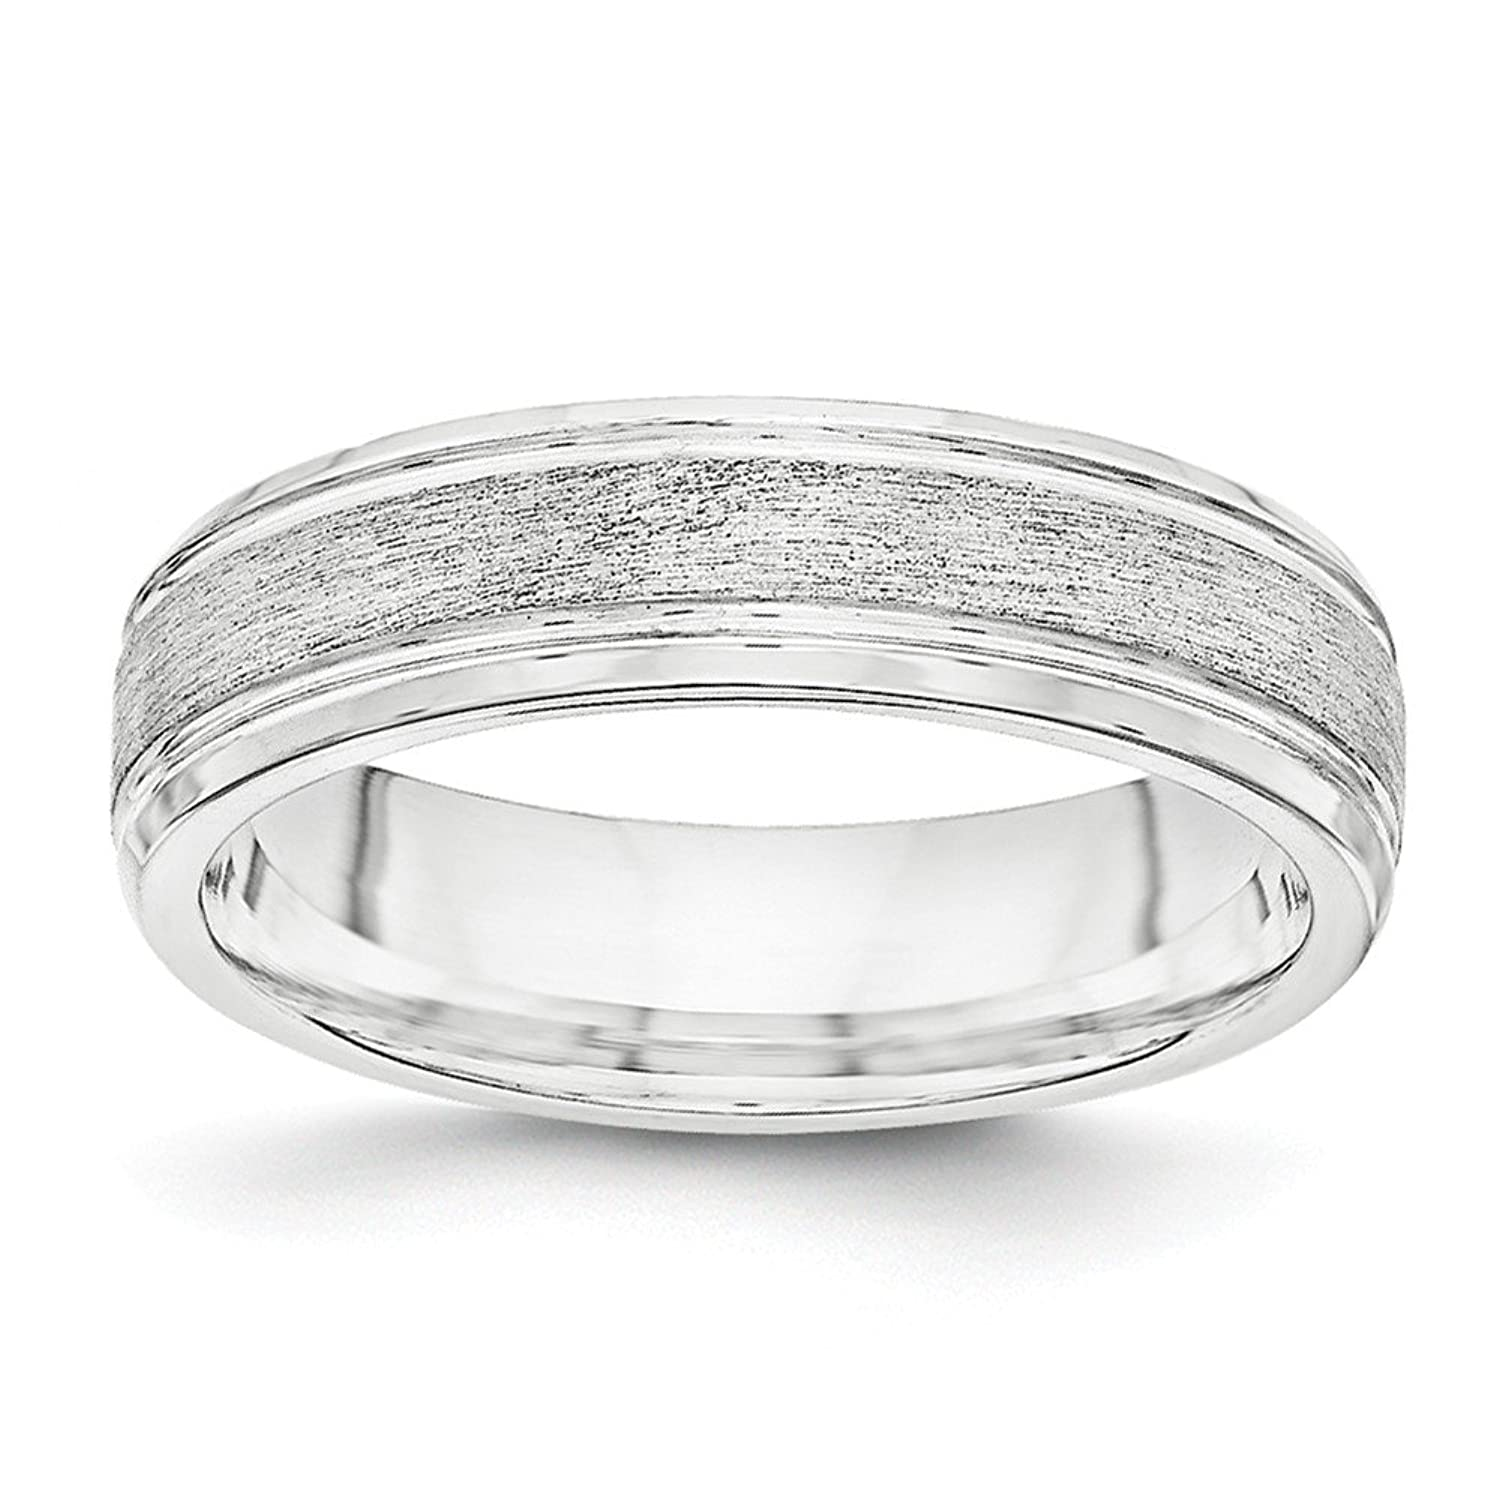 Sonia Jewels Sterling Silver 6mm Brushed Fancy Wedding Band